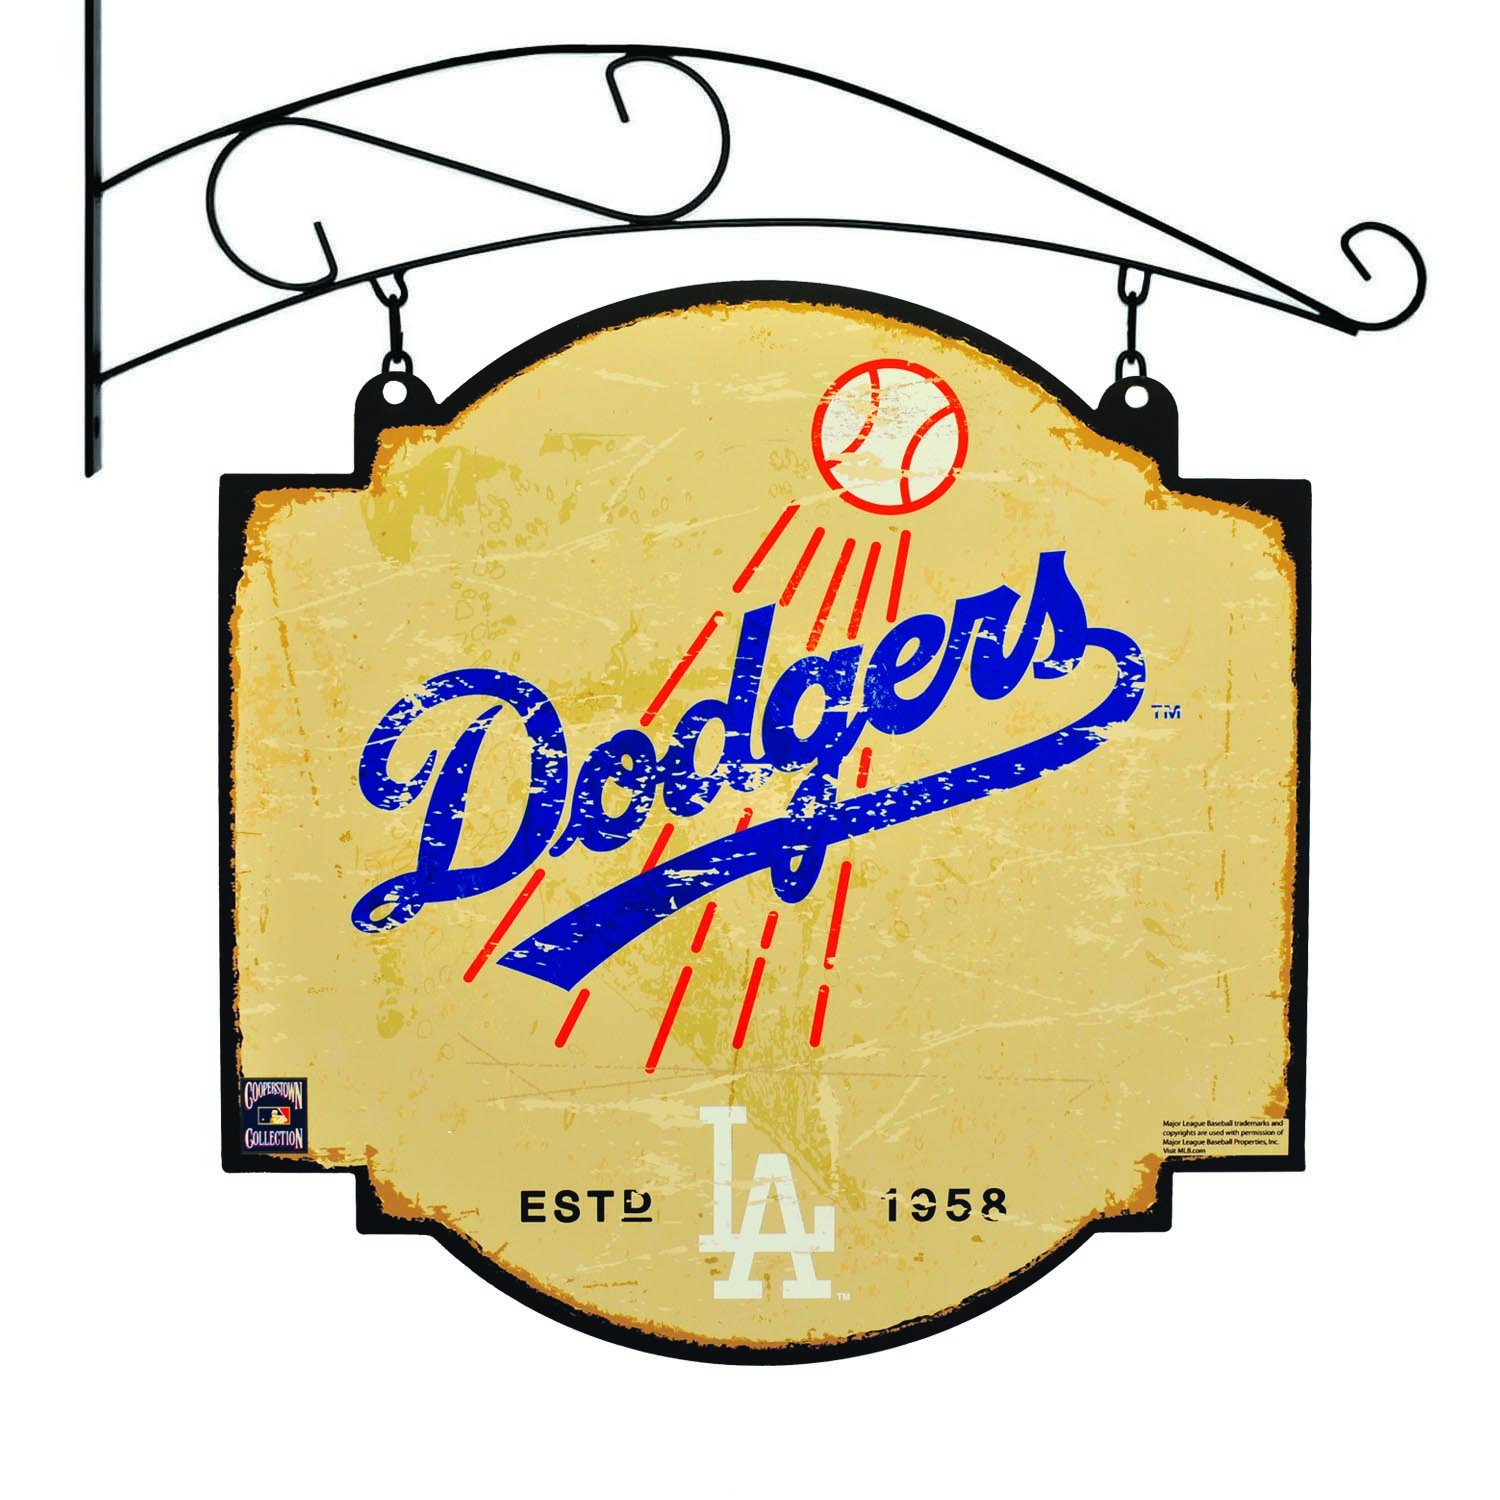 Los Angeles Dodgers Winning Streak Retro 1968 Tavern Pub. Order Posters Online. Winnie The Pooh Stickers. The Incredibles Signs. Temporary Traffic Signs. Spike Stickers. Stairwell Murals. Cottage Signs Of Stroke. Cover Fb Banners